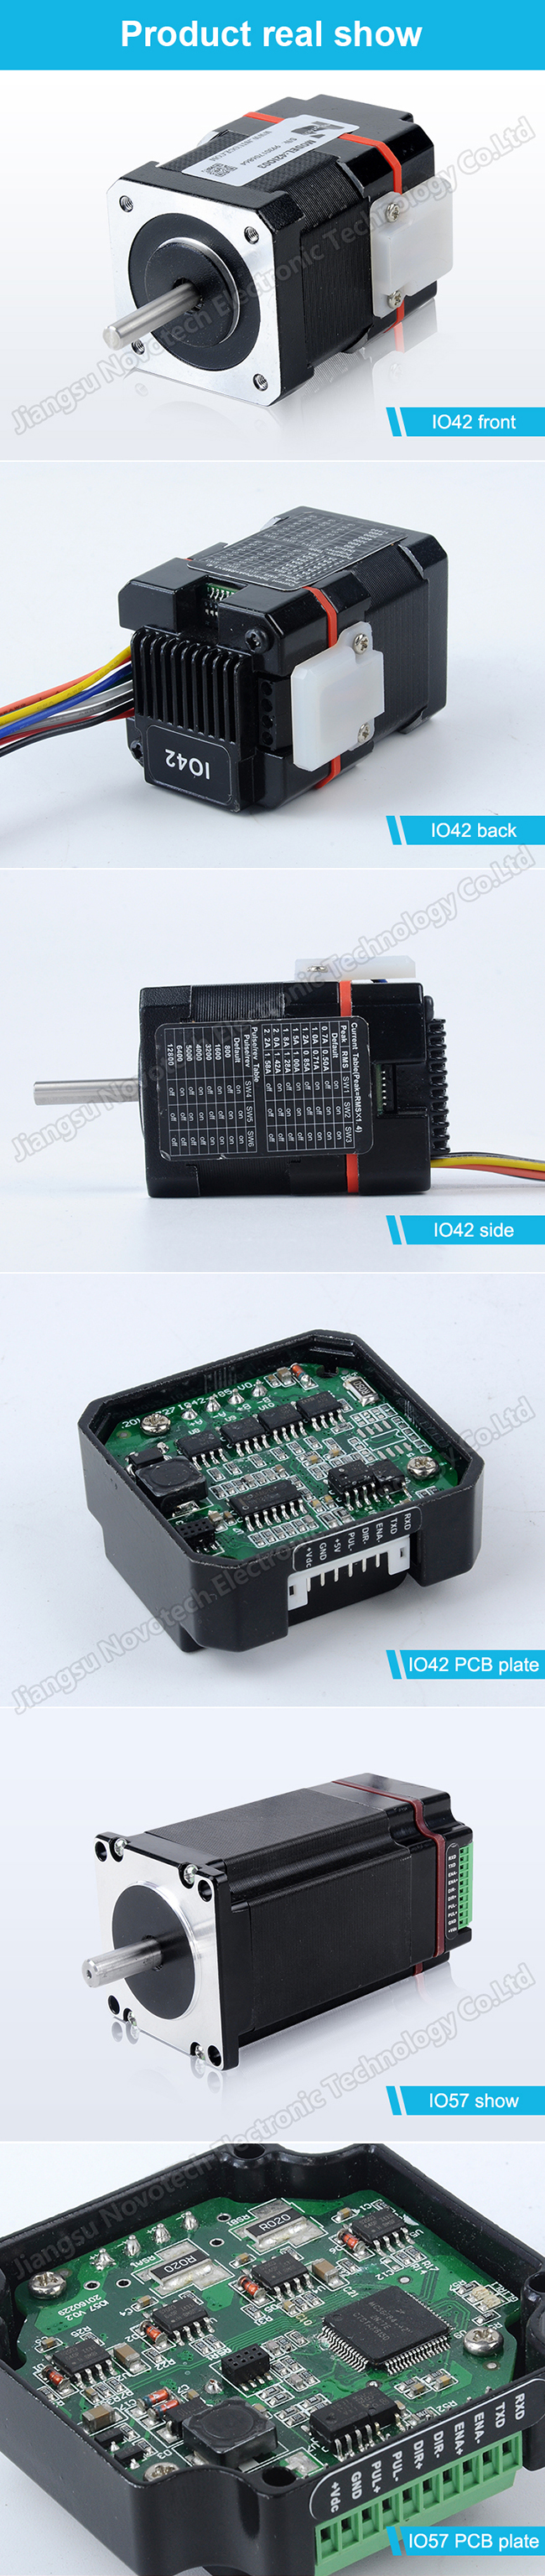 Stepper Motor With Driver.jpg